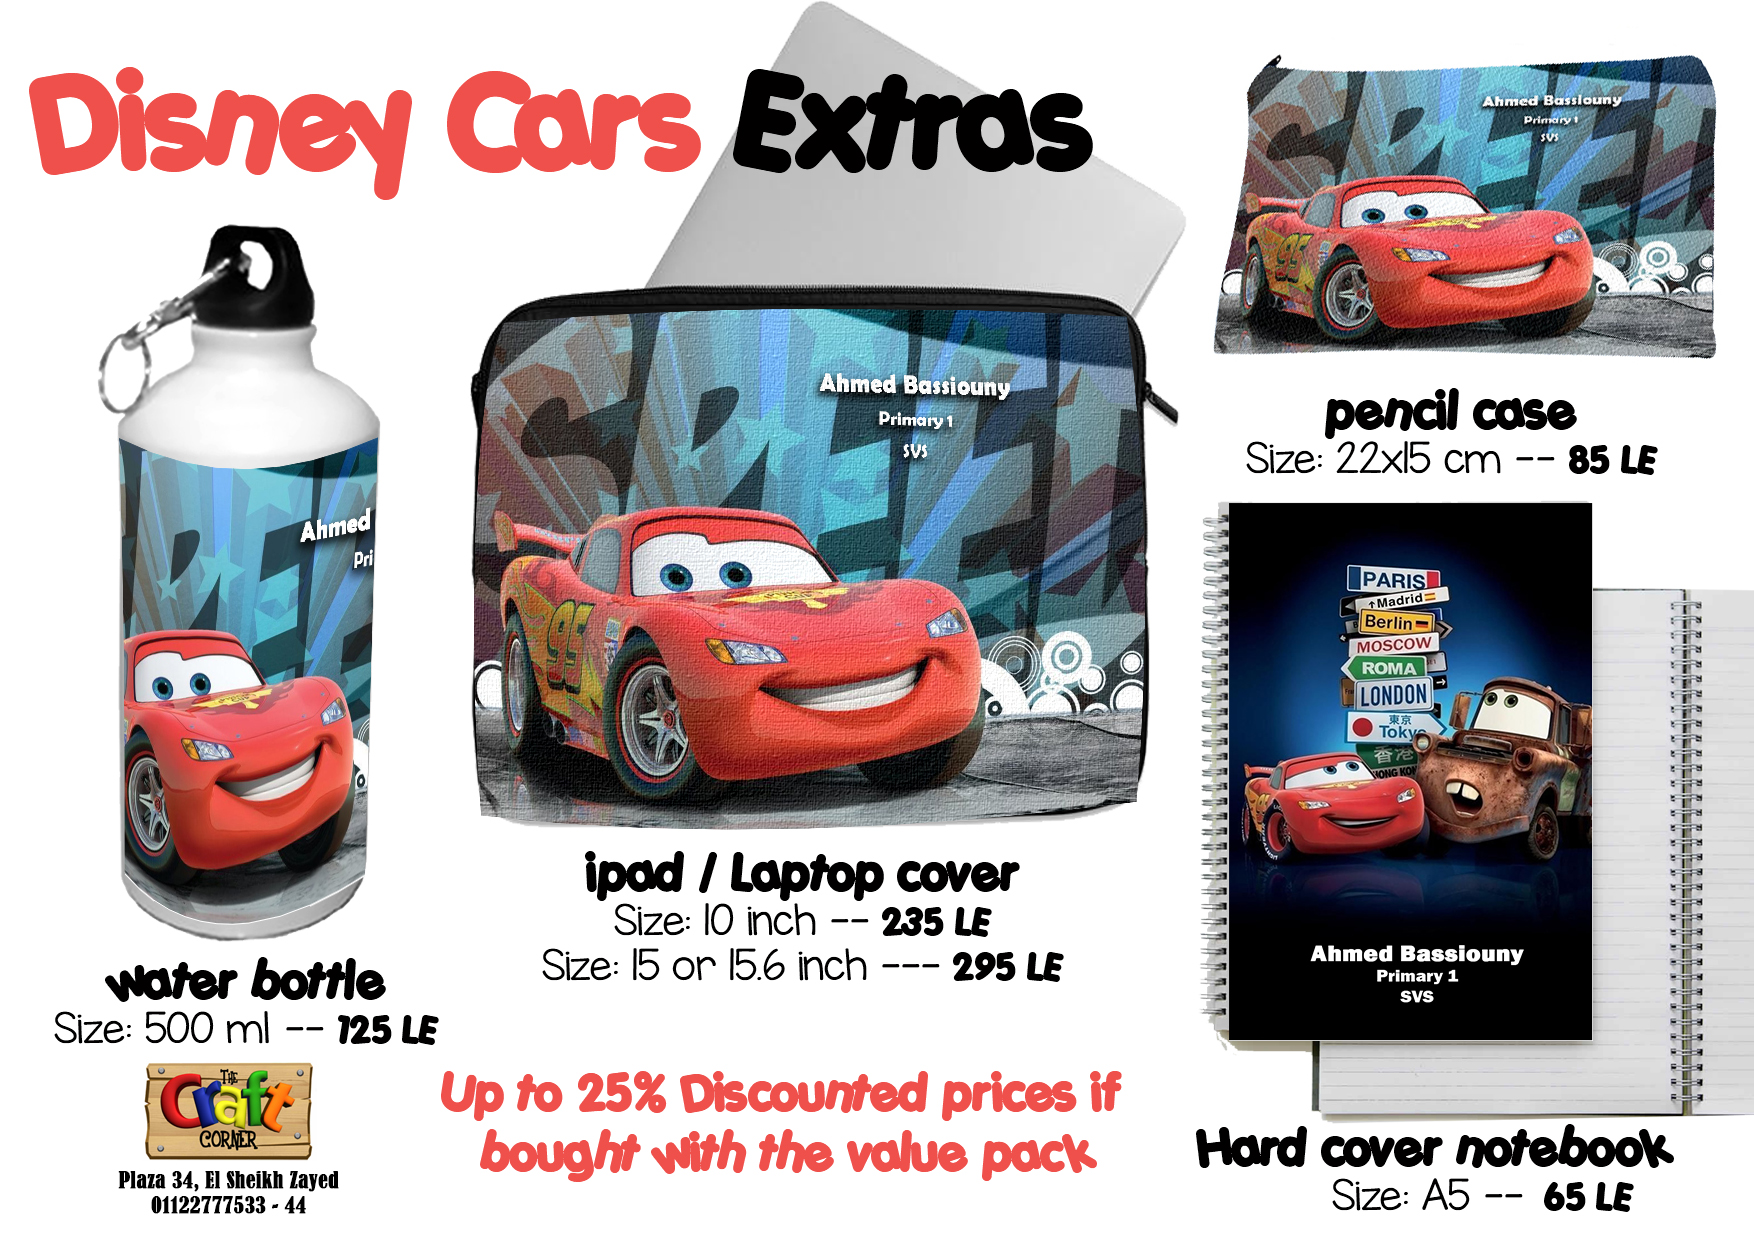 Disney cars Extras